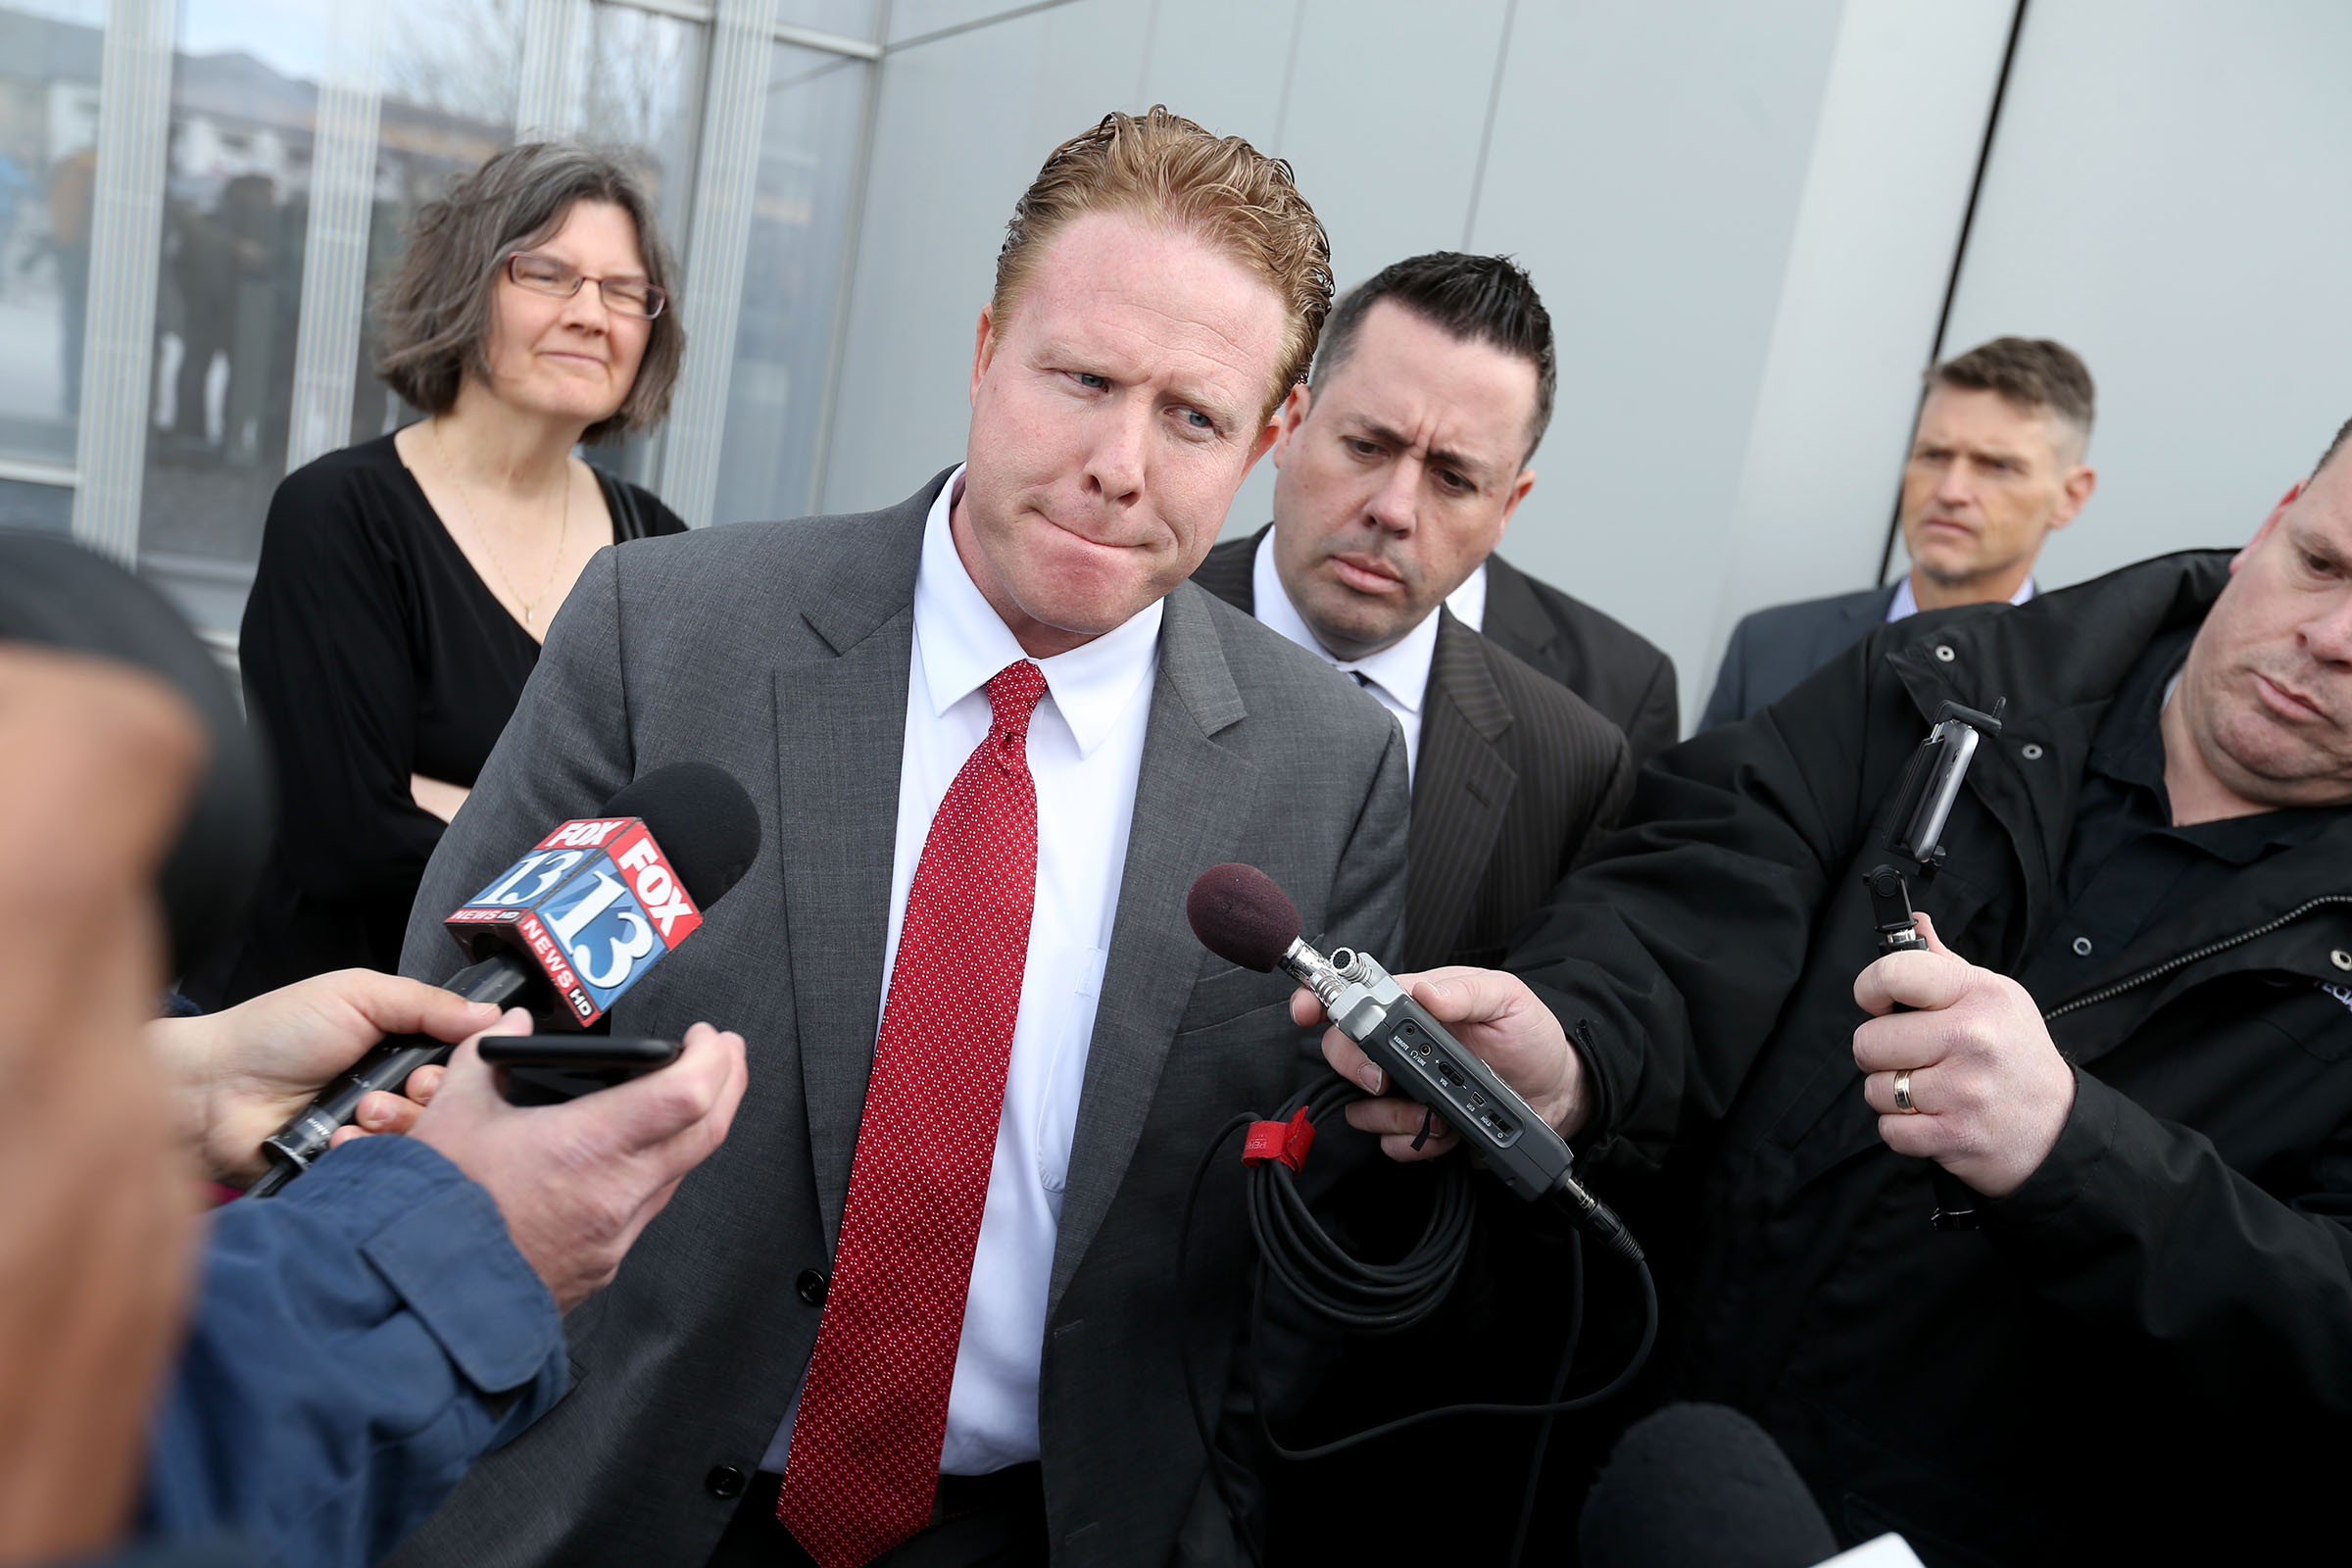 Former St. George multimillionaire Jeremy Johnson speaks to reporters after being found guilty on eight of 86 charges at the federal courthouse in Salt Lake City on Friday, March 25, 2016.